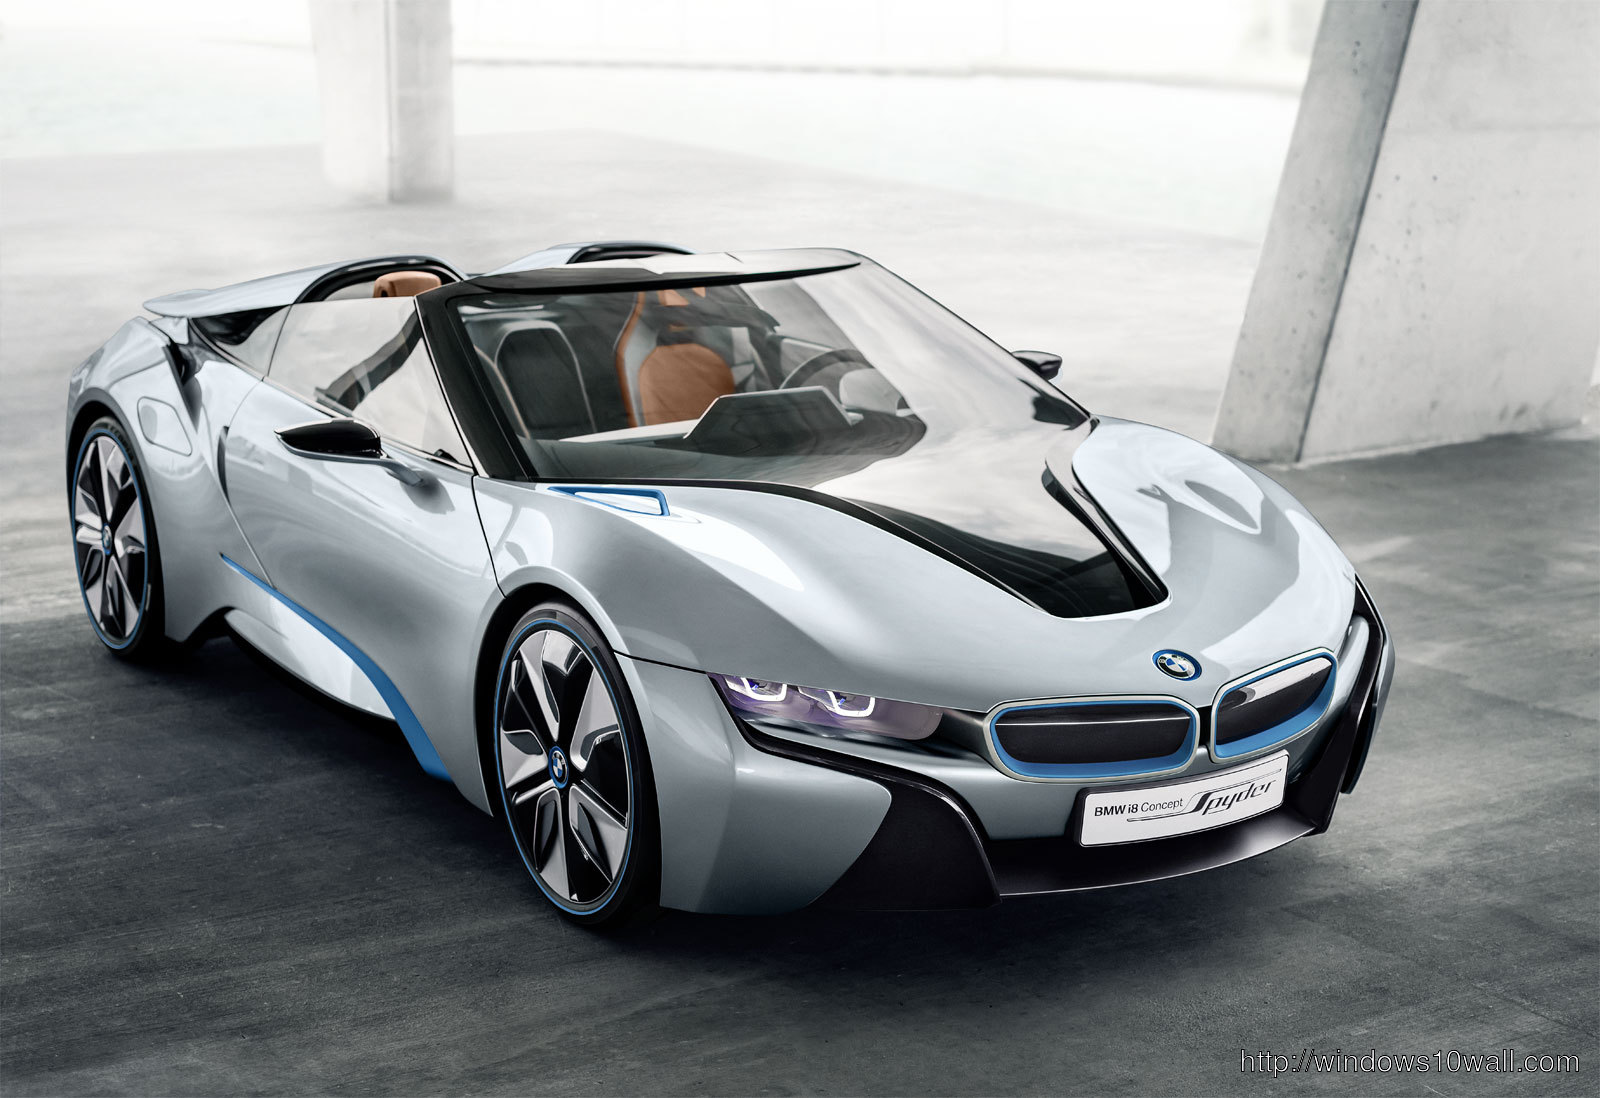 BMW i8 Concept Spyder 2013 Desktop Background Wallpaper